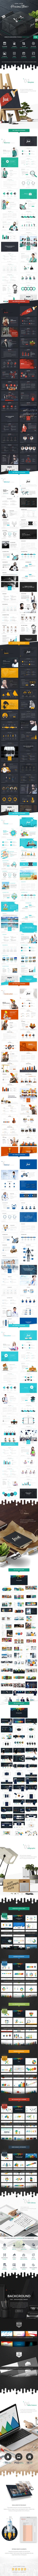 Fast - Multipurpose Powerpoint Template Pack